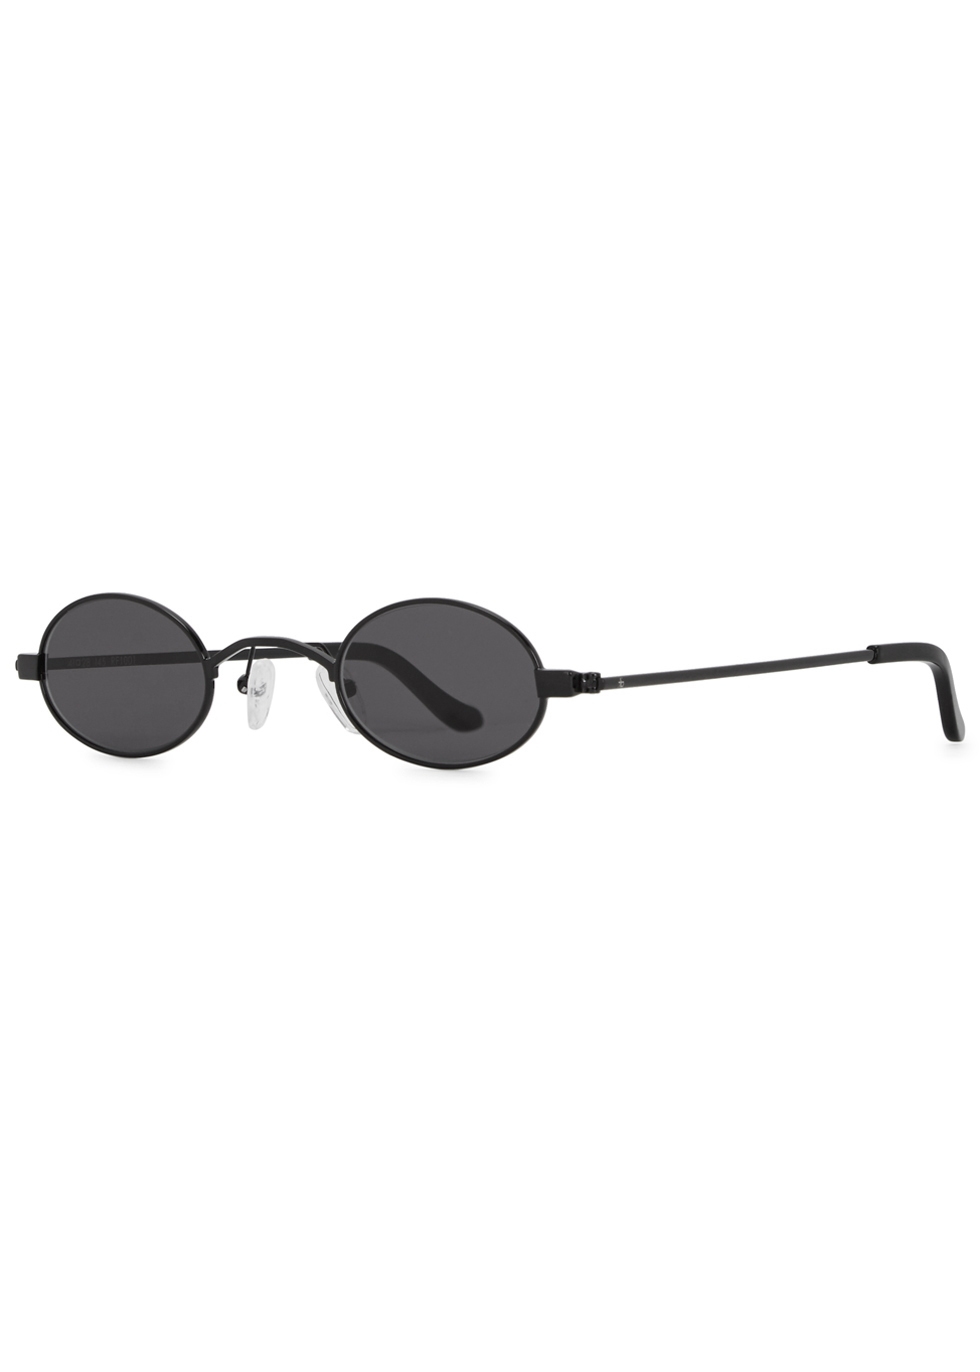 ROBERI AND FRAUD Doris Black Round-Frame Sunglasses